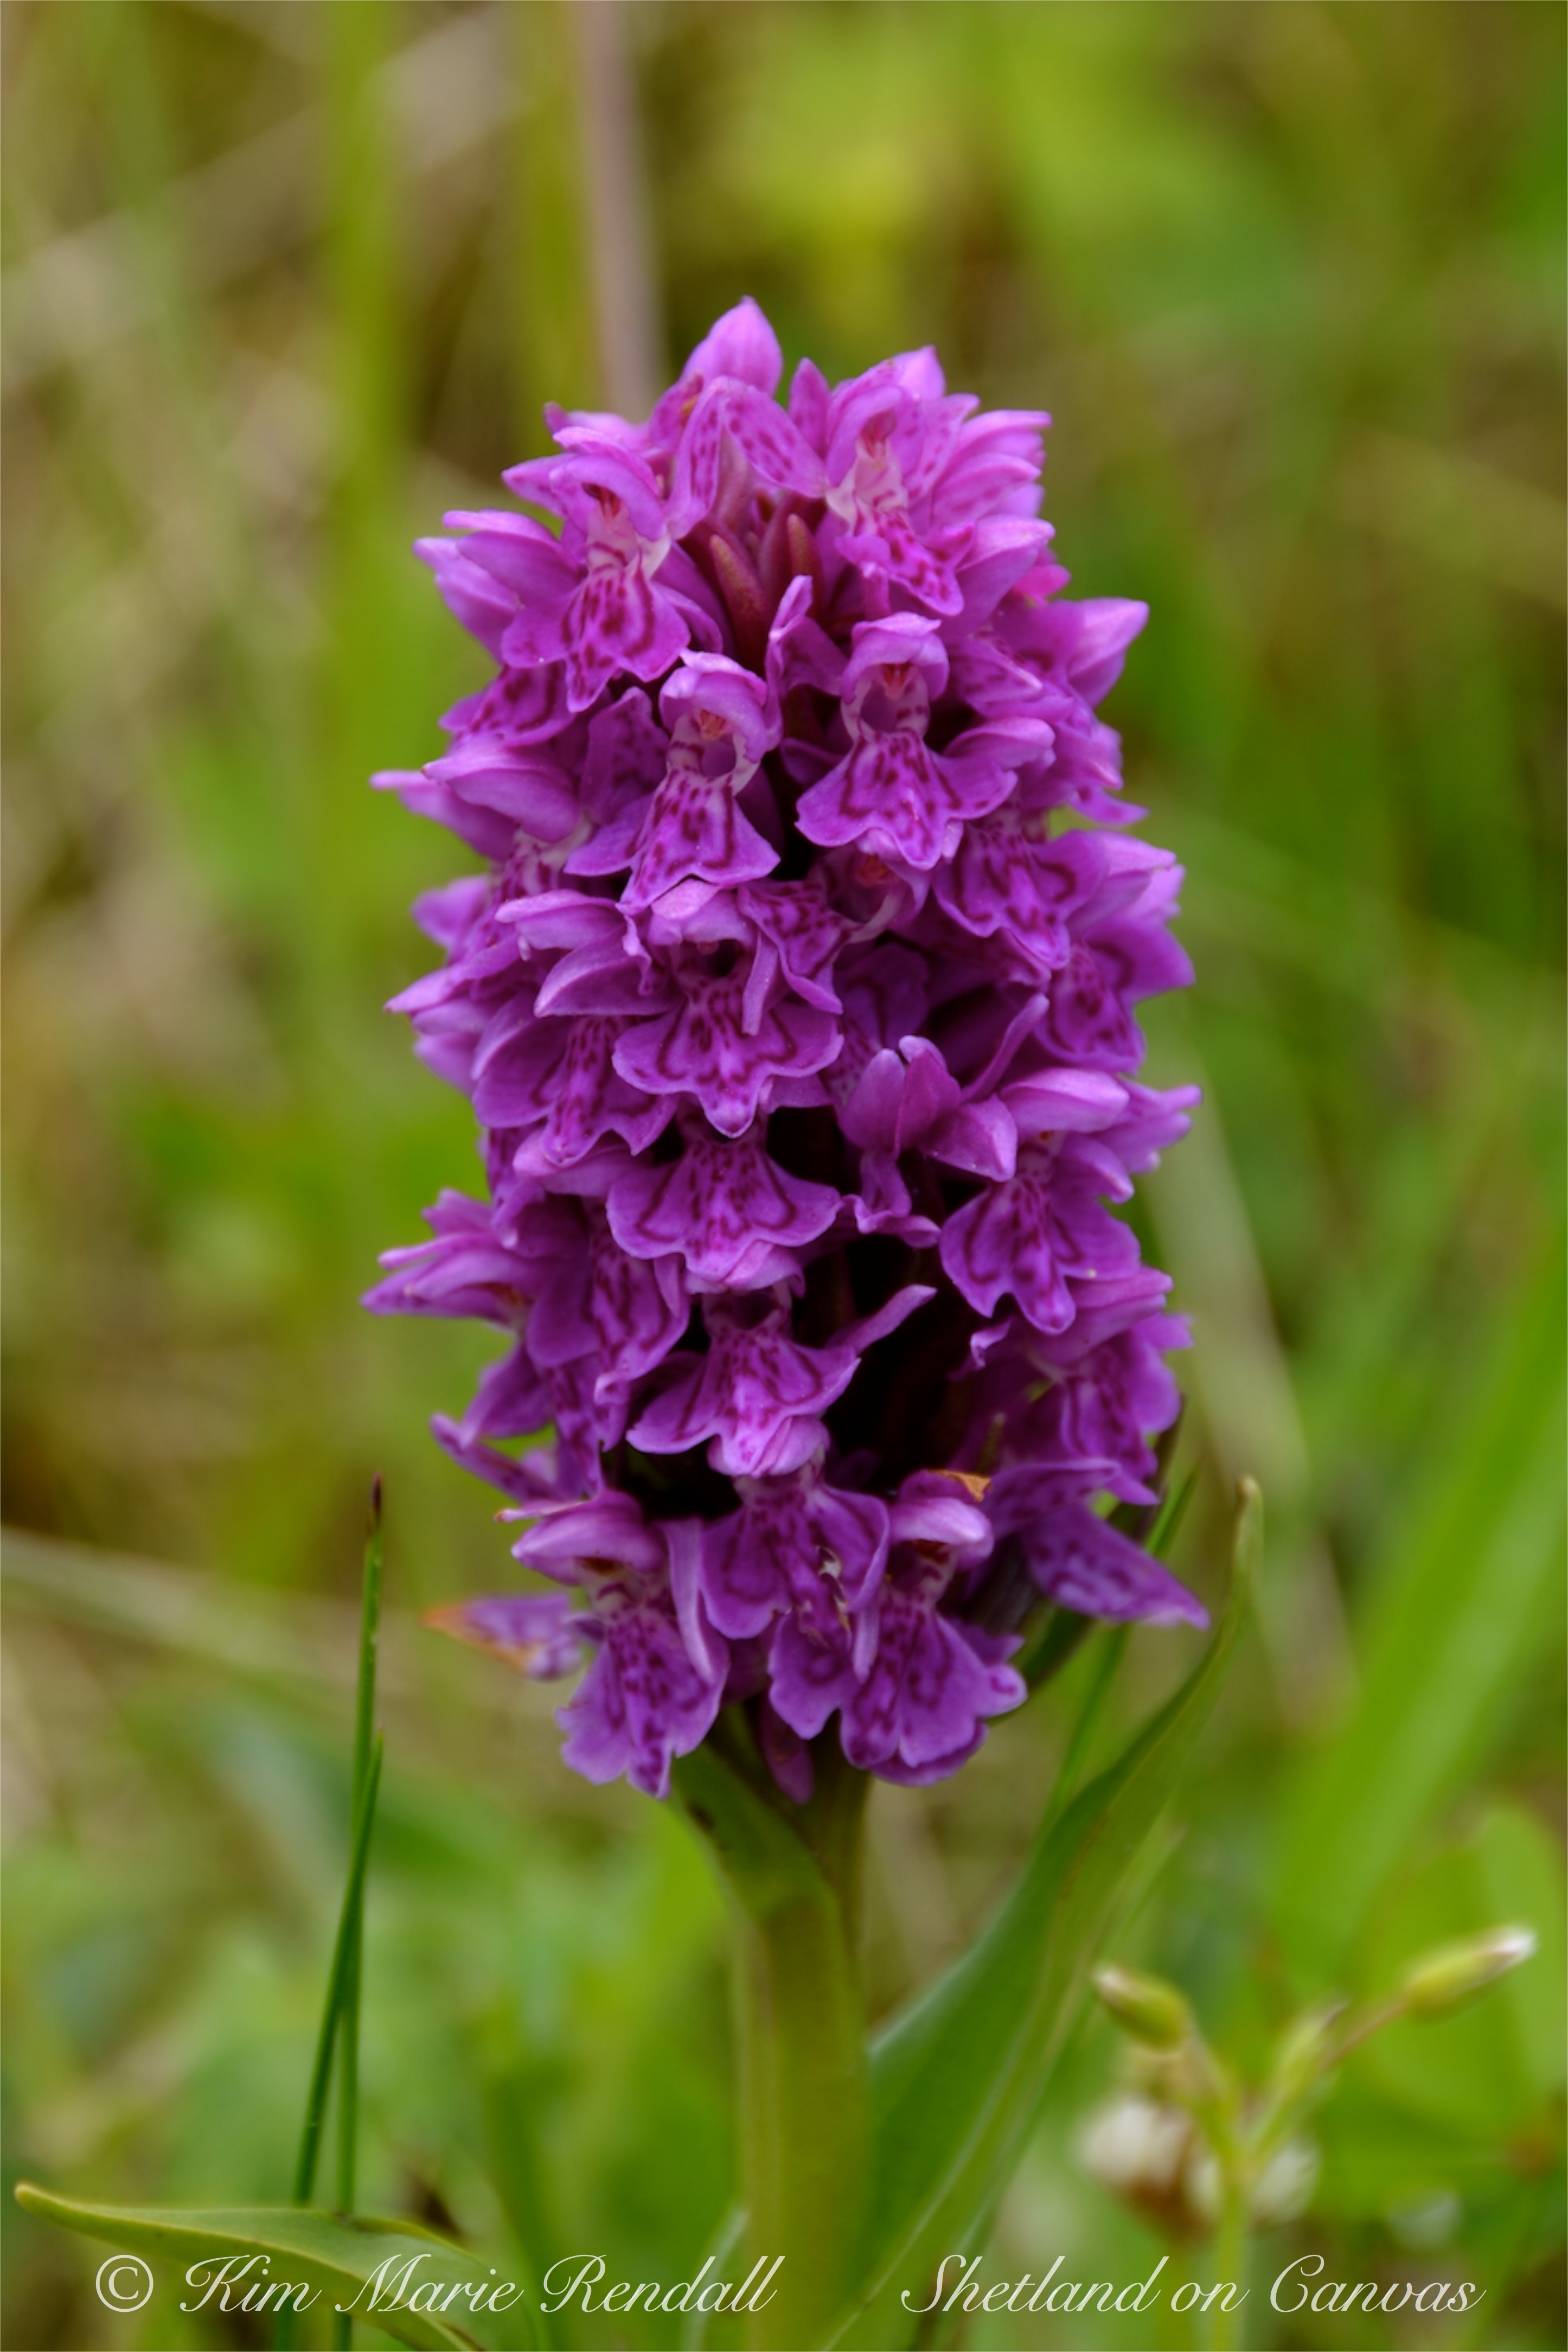 Hebridean spotted orchid, South Nesting